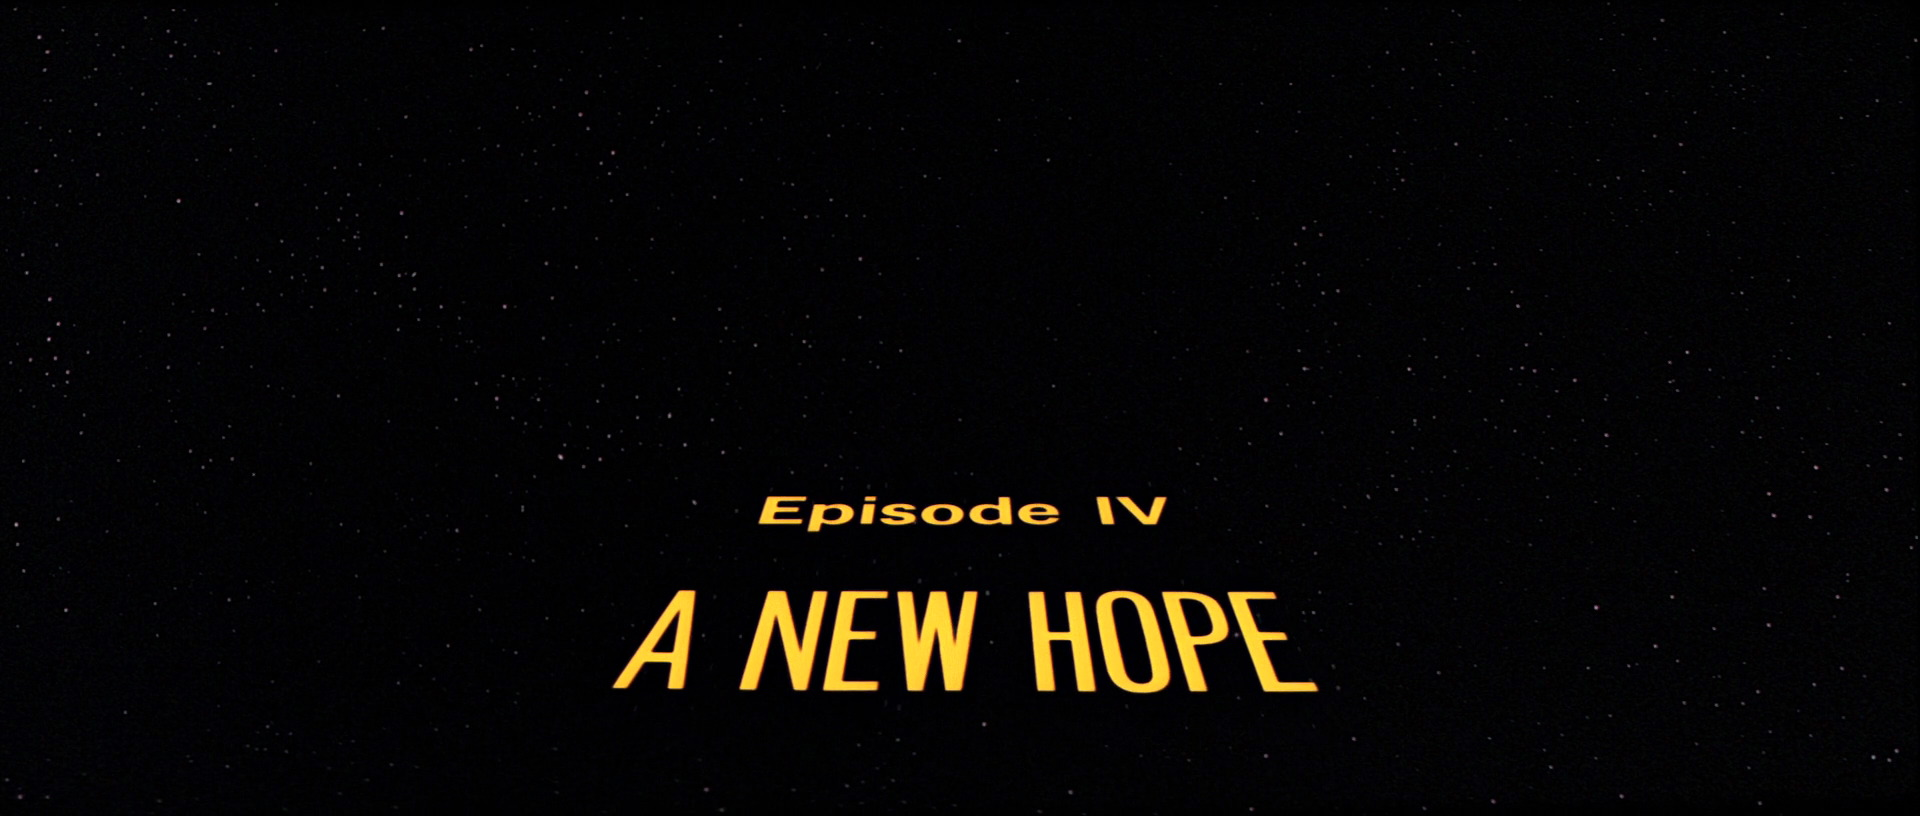 screencap of title screen of star wars episode iv: a new hope